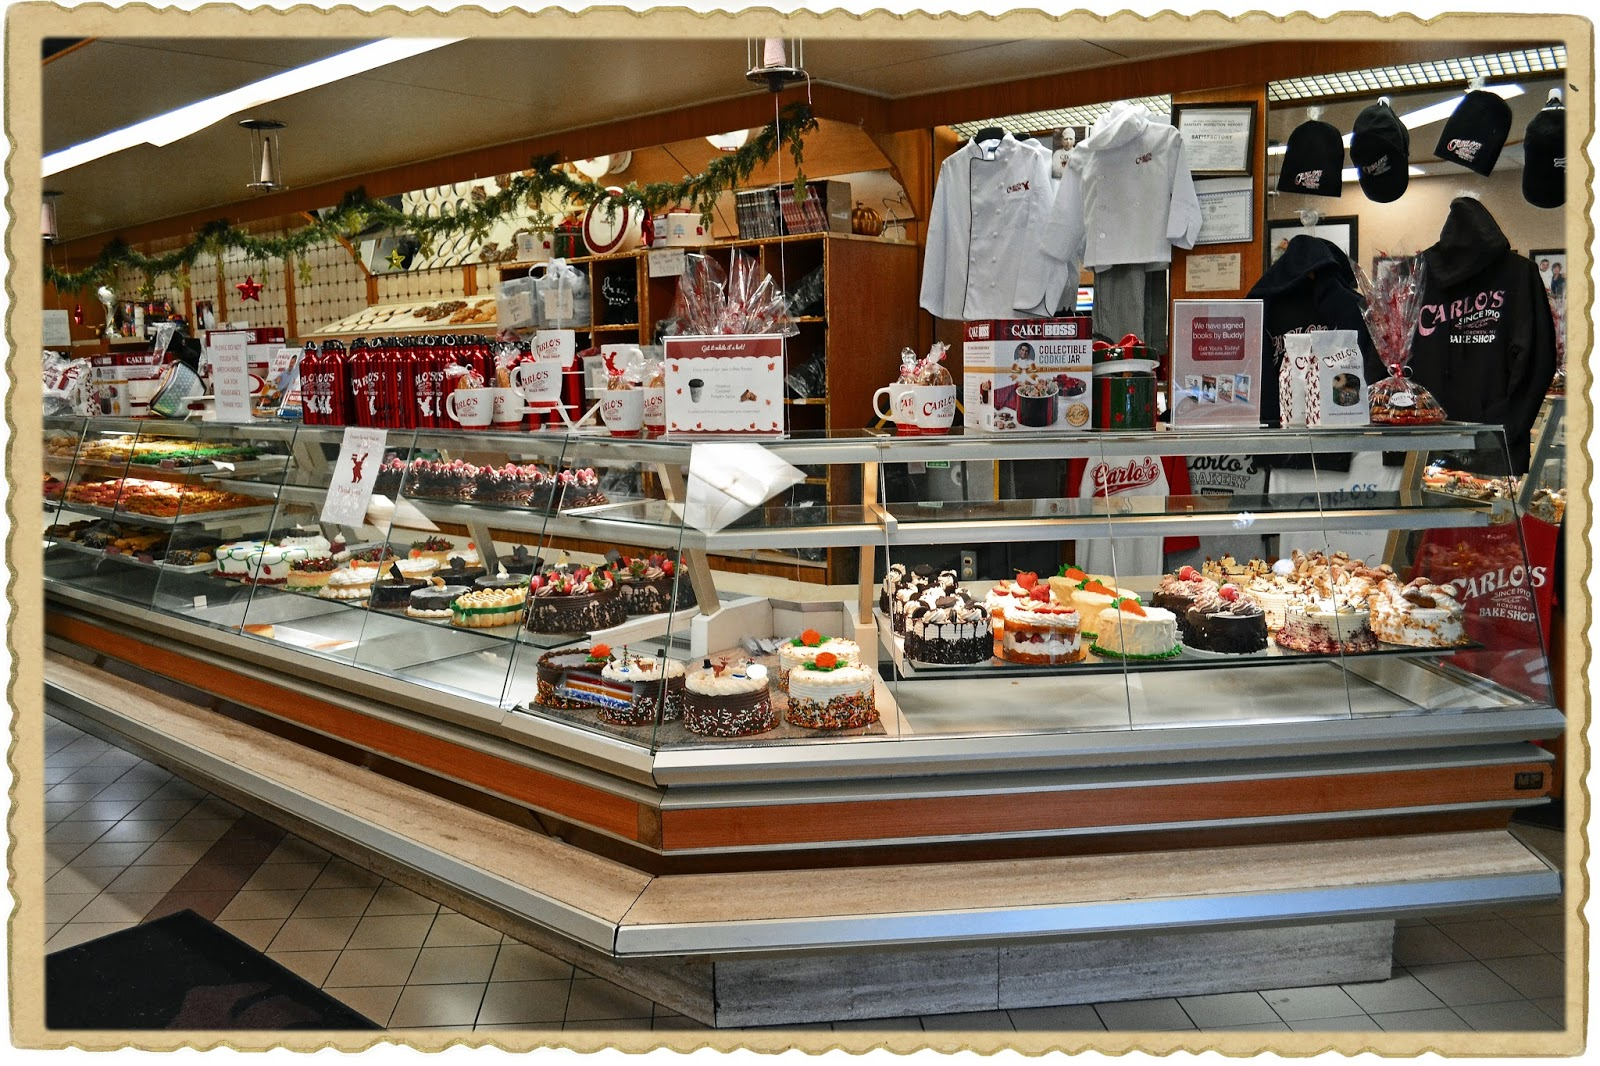 carlos bakery 139 carlos bakery jobs available on indeedcom apply to retail sales associate, cake decorator, dishwasher and more.